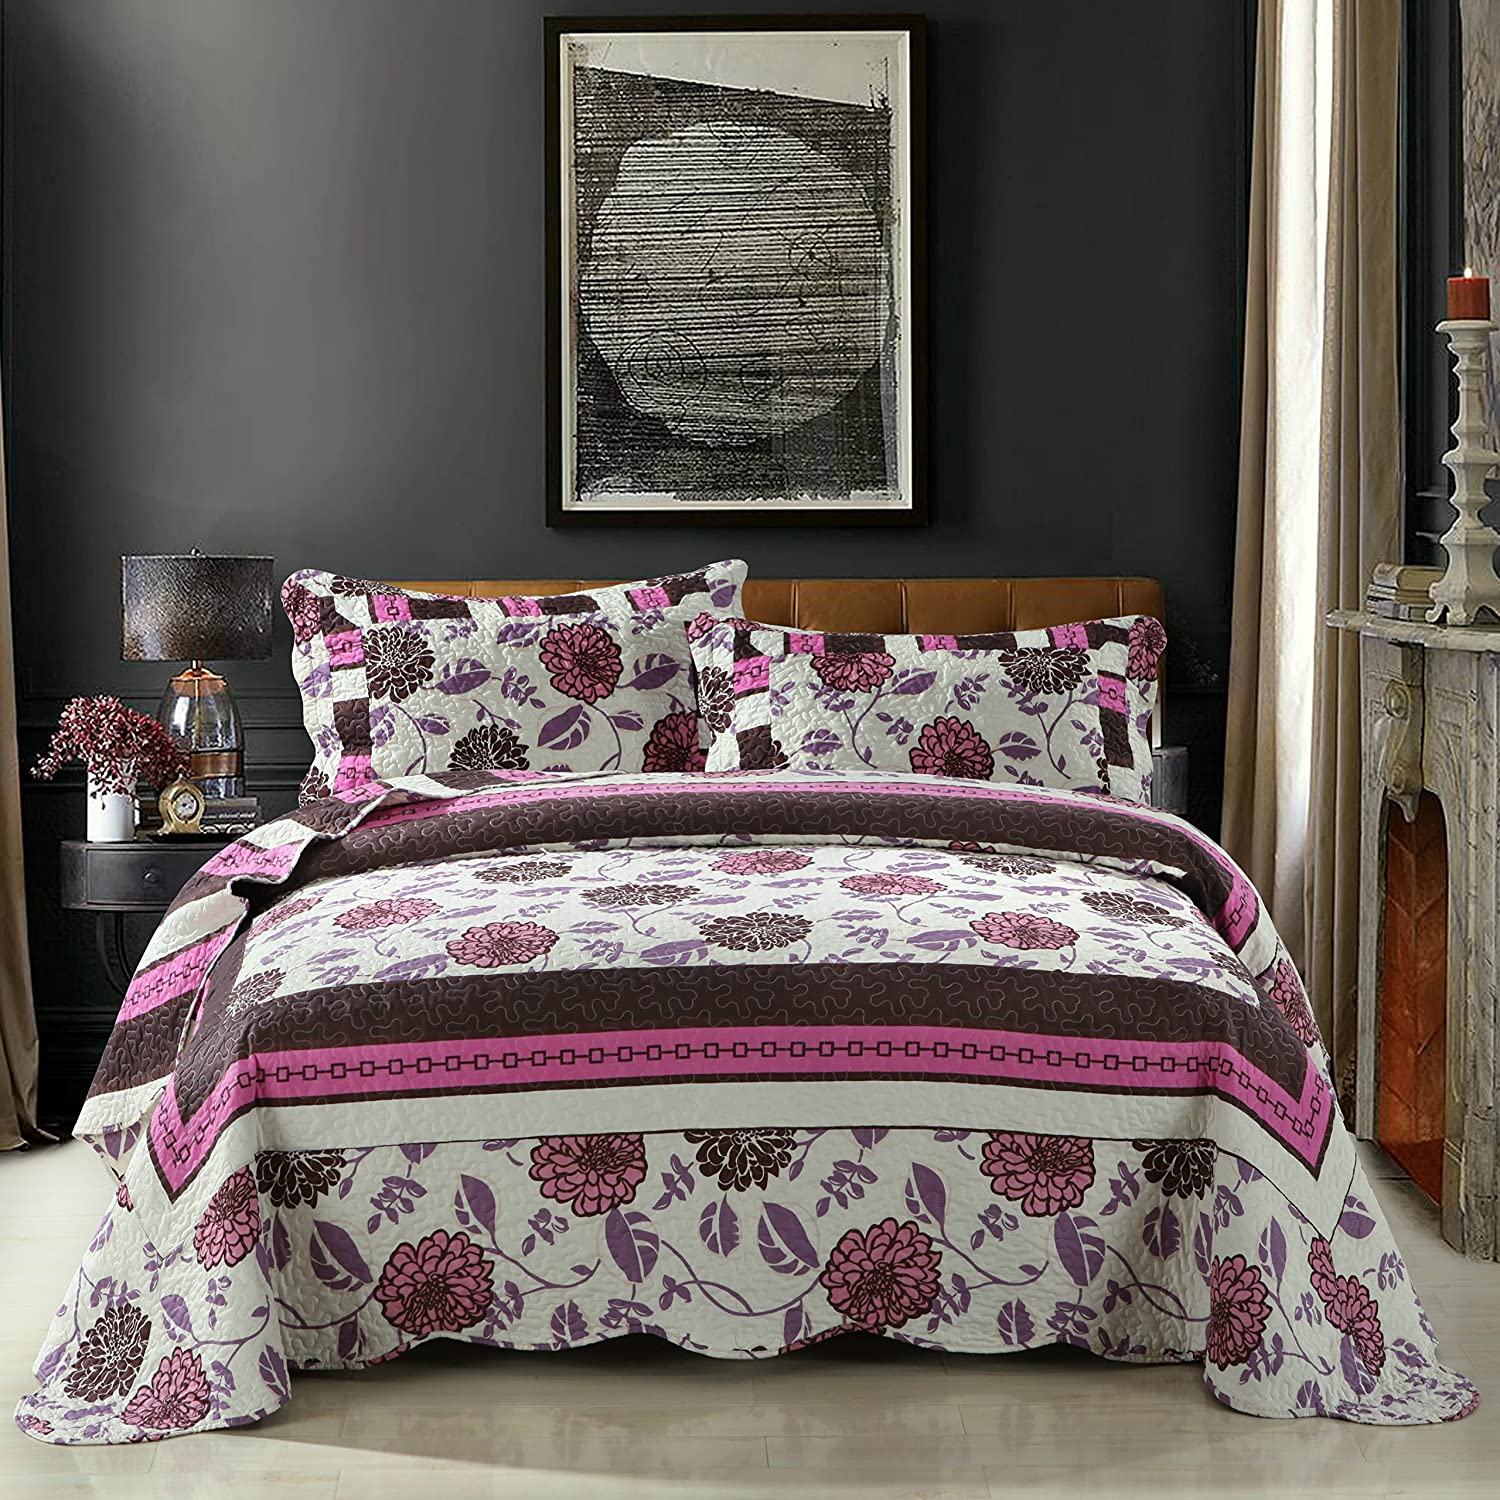 DaDa Bedding Chrysanthemum Vines Reversible Patchwork Quilted Bedspread Set